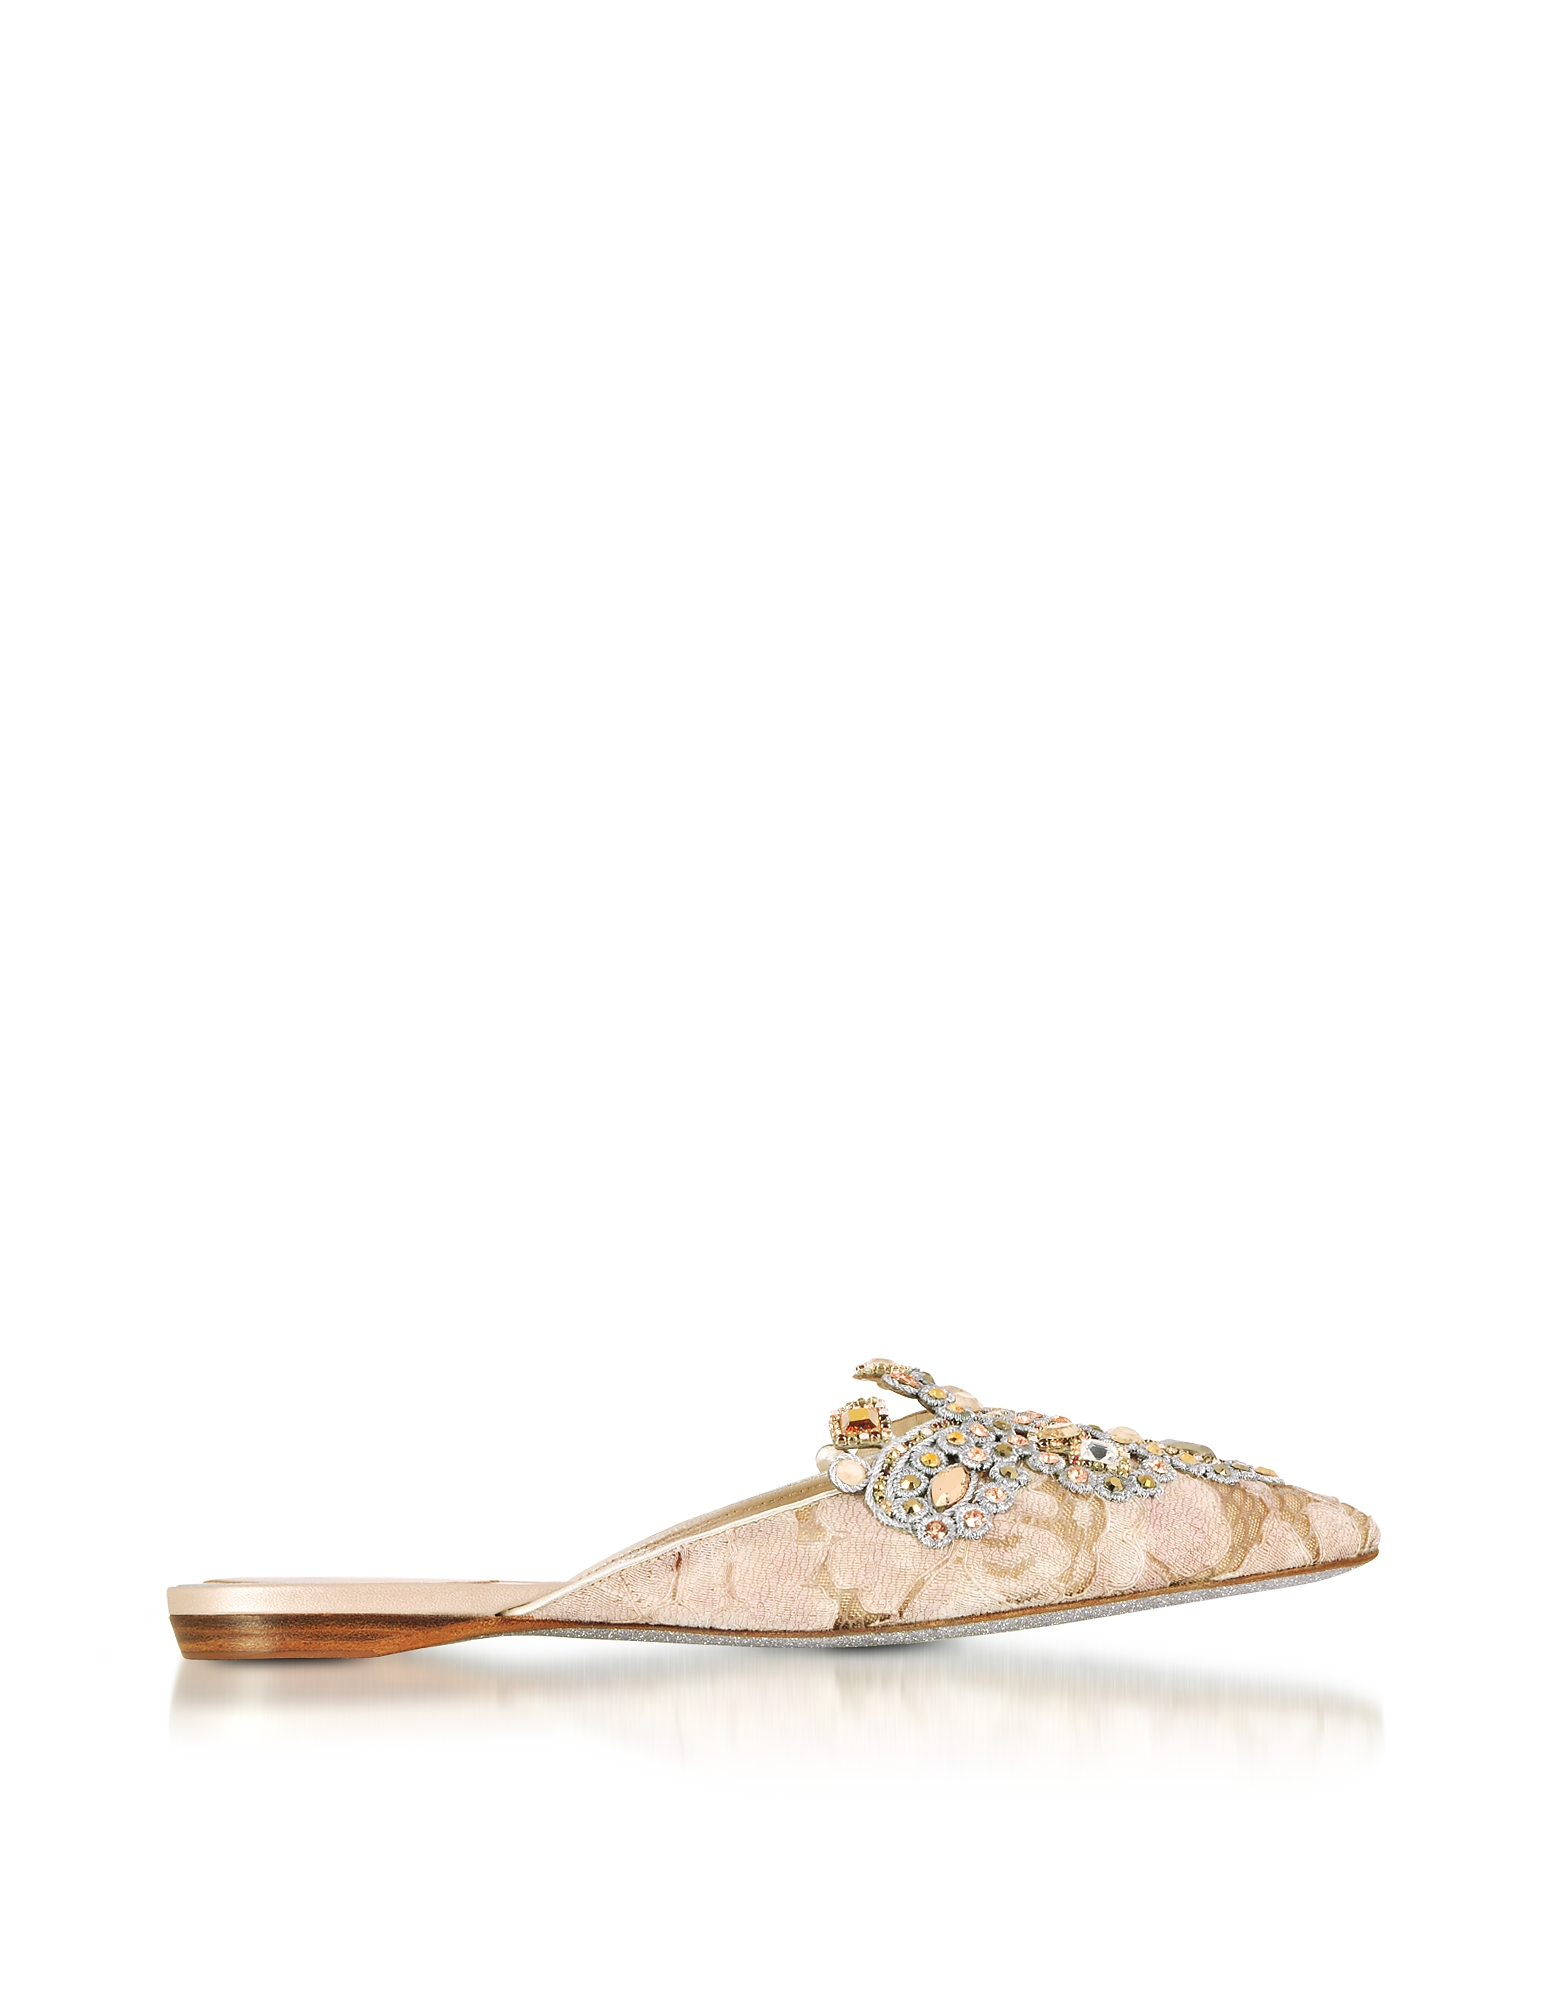 Rene Caovilla Shoes, Veneziana Beige Lace and Light Gold Nappa Mule w/Crystals